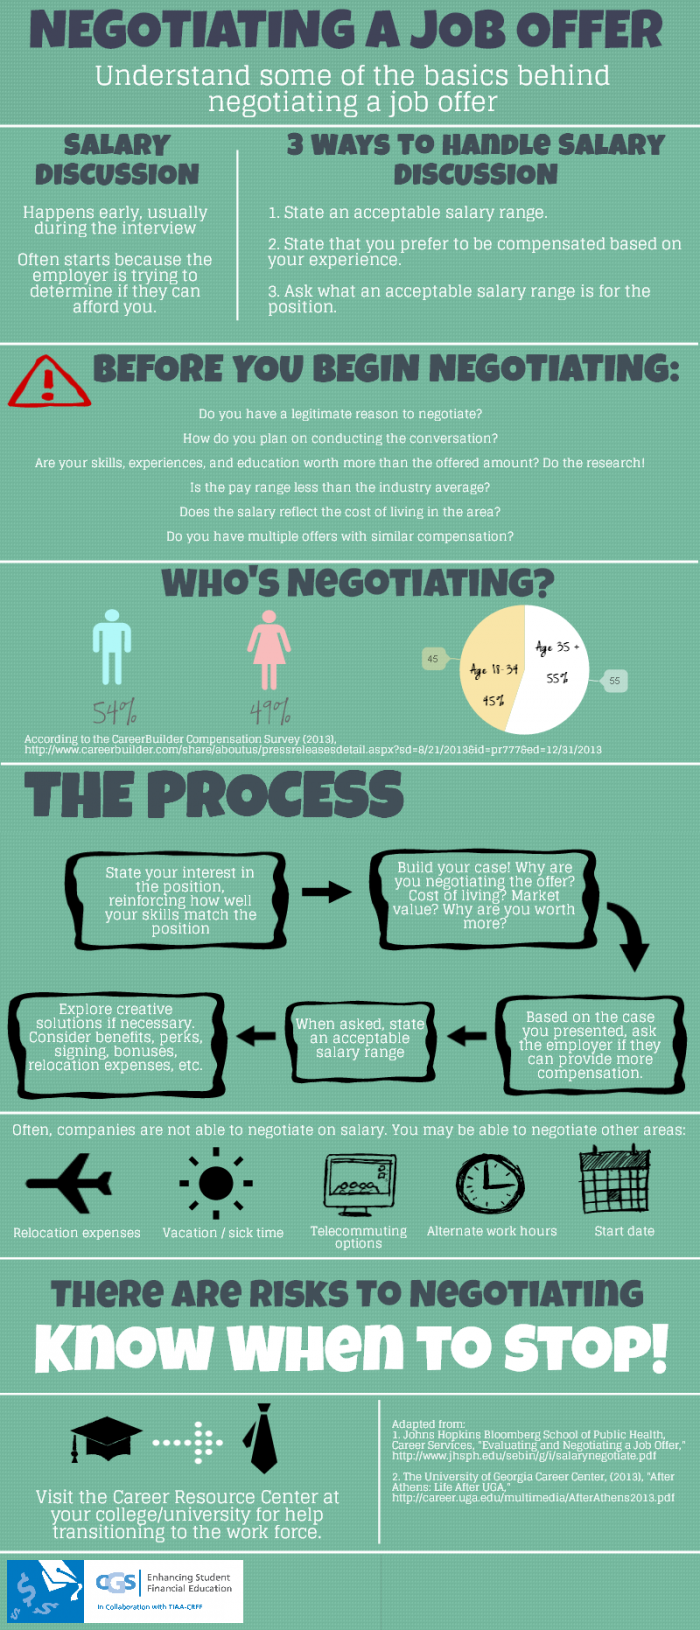 job tips negotiating a job offer council of graduate schools